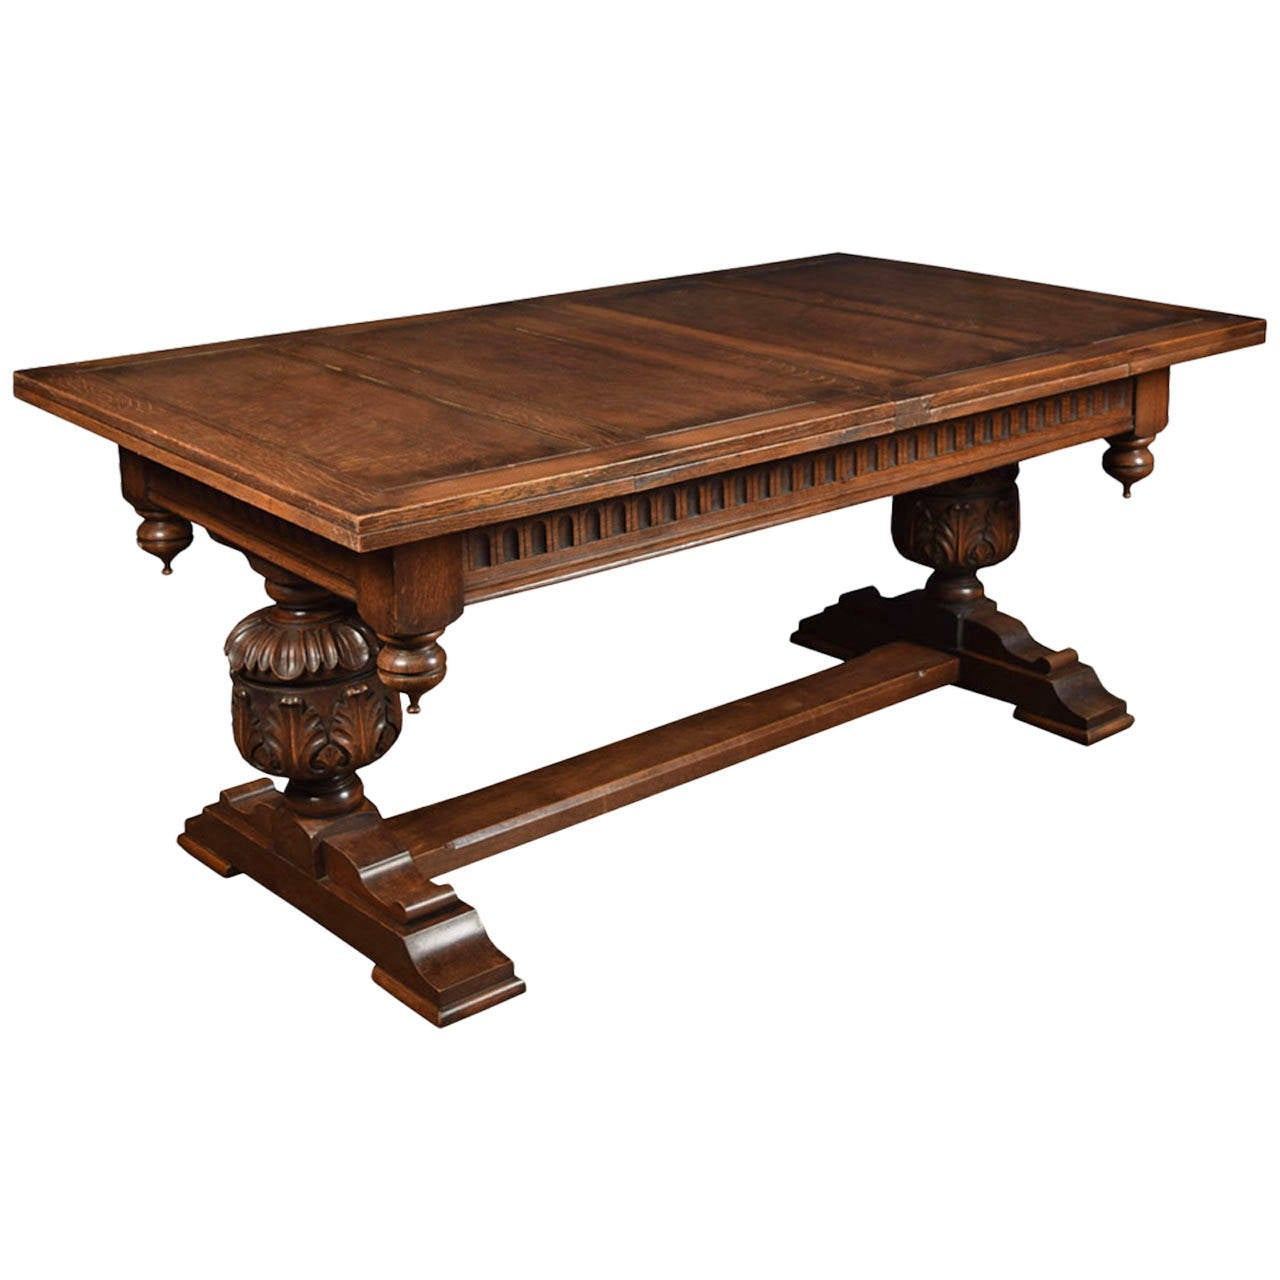 Large oak refectory dining table at 1stdibs for Oak dining table